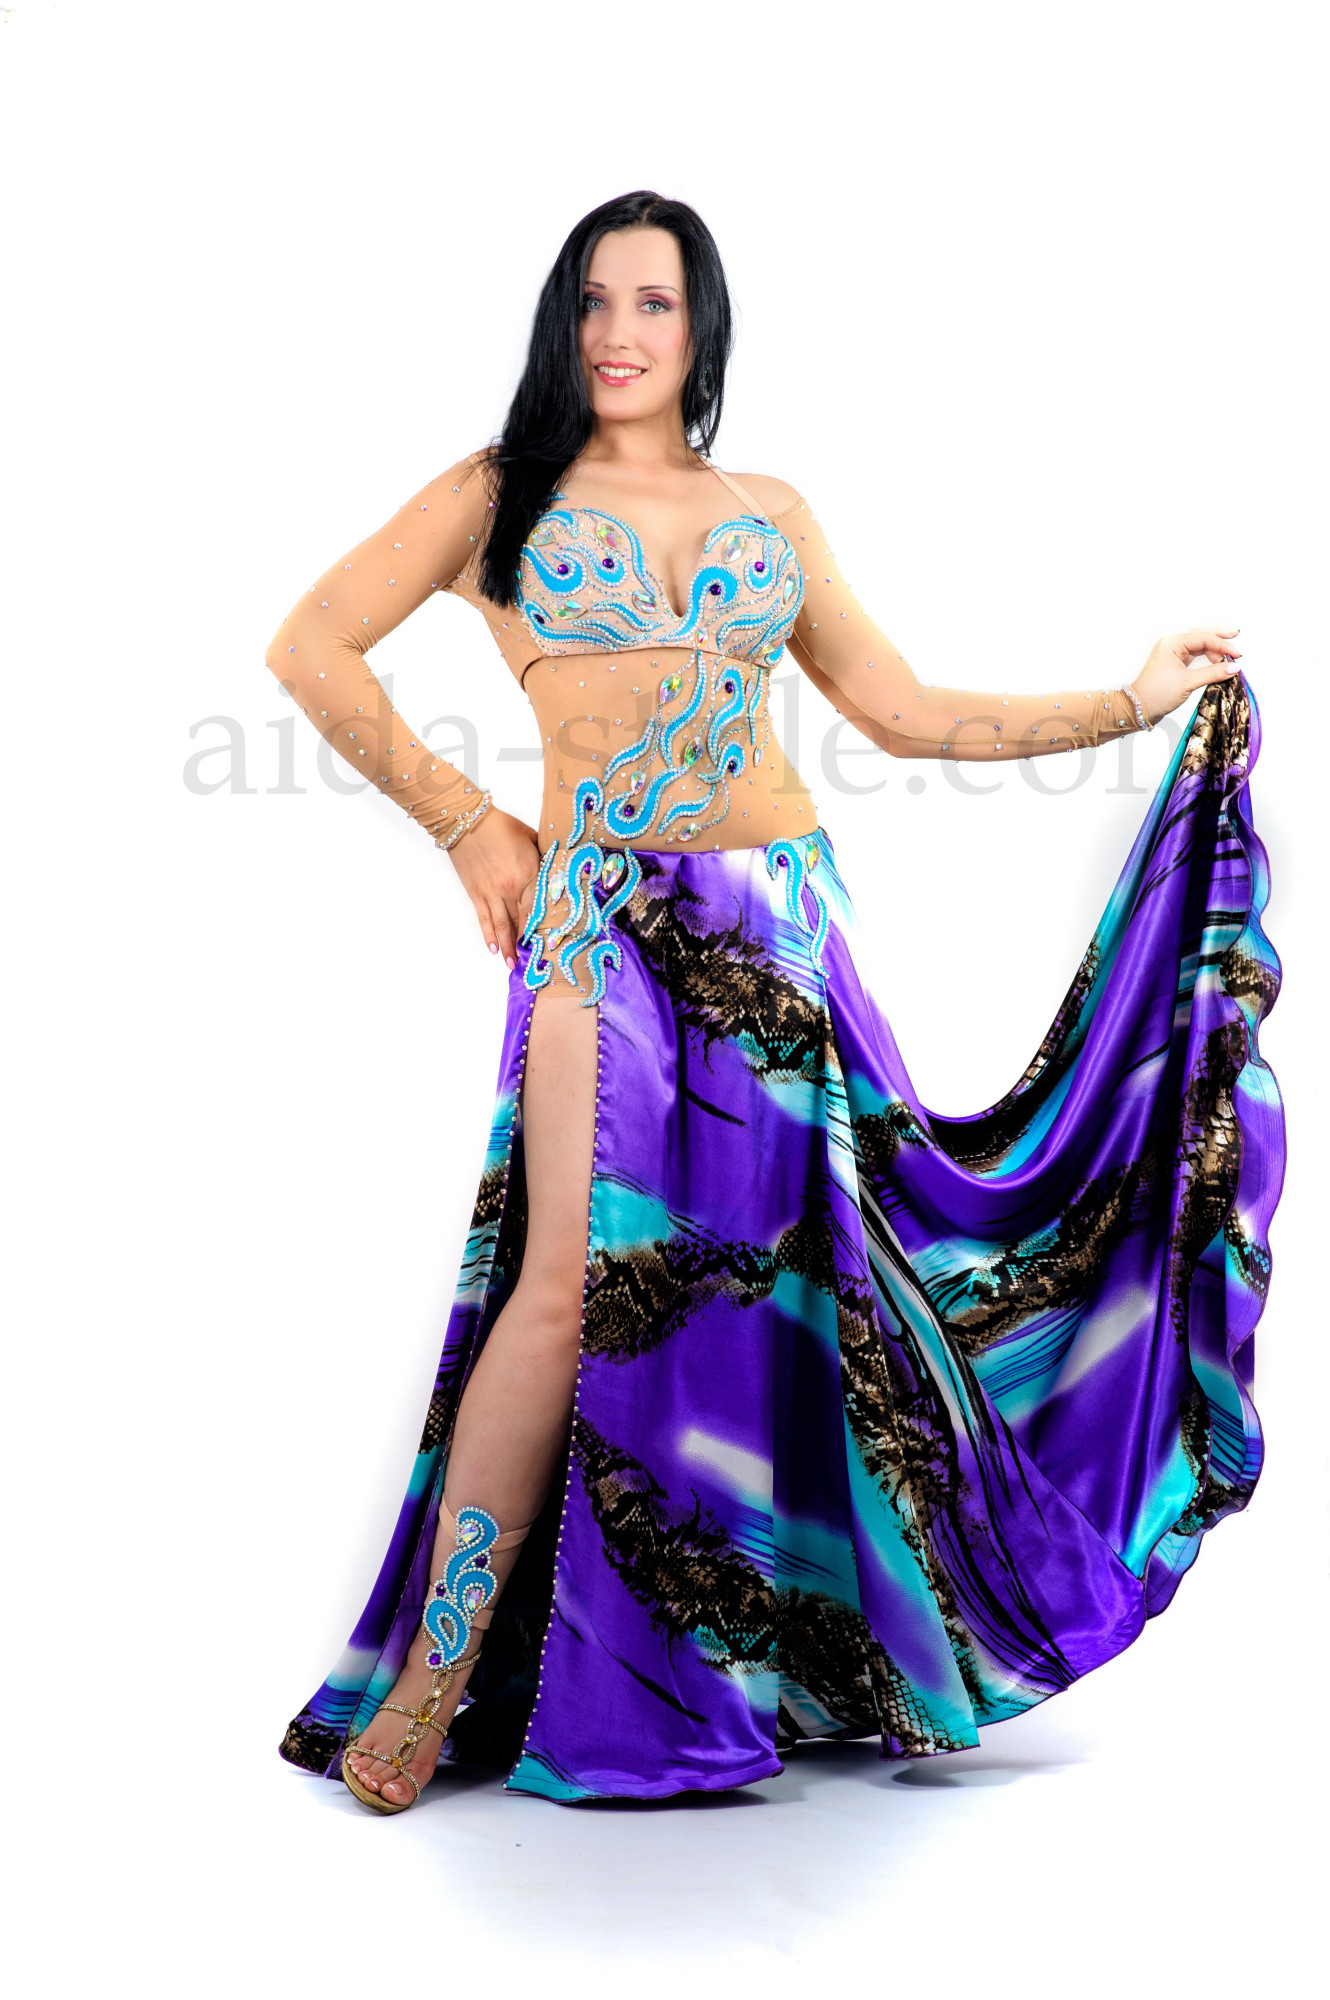 Marine Professional belly dance custom made outfit in one piece